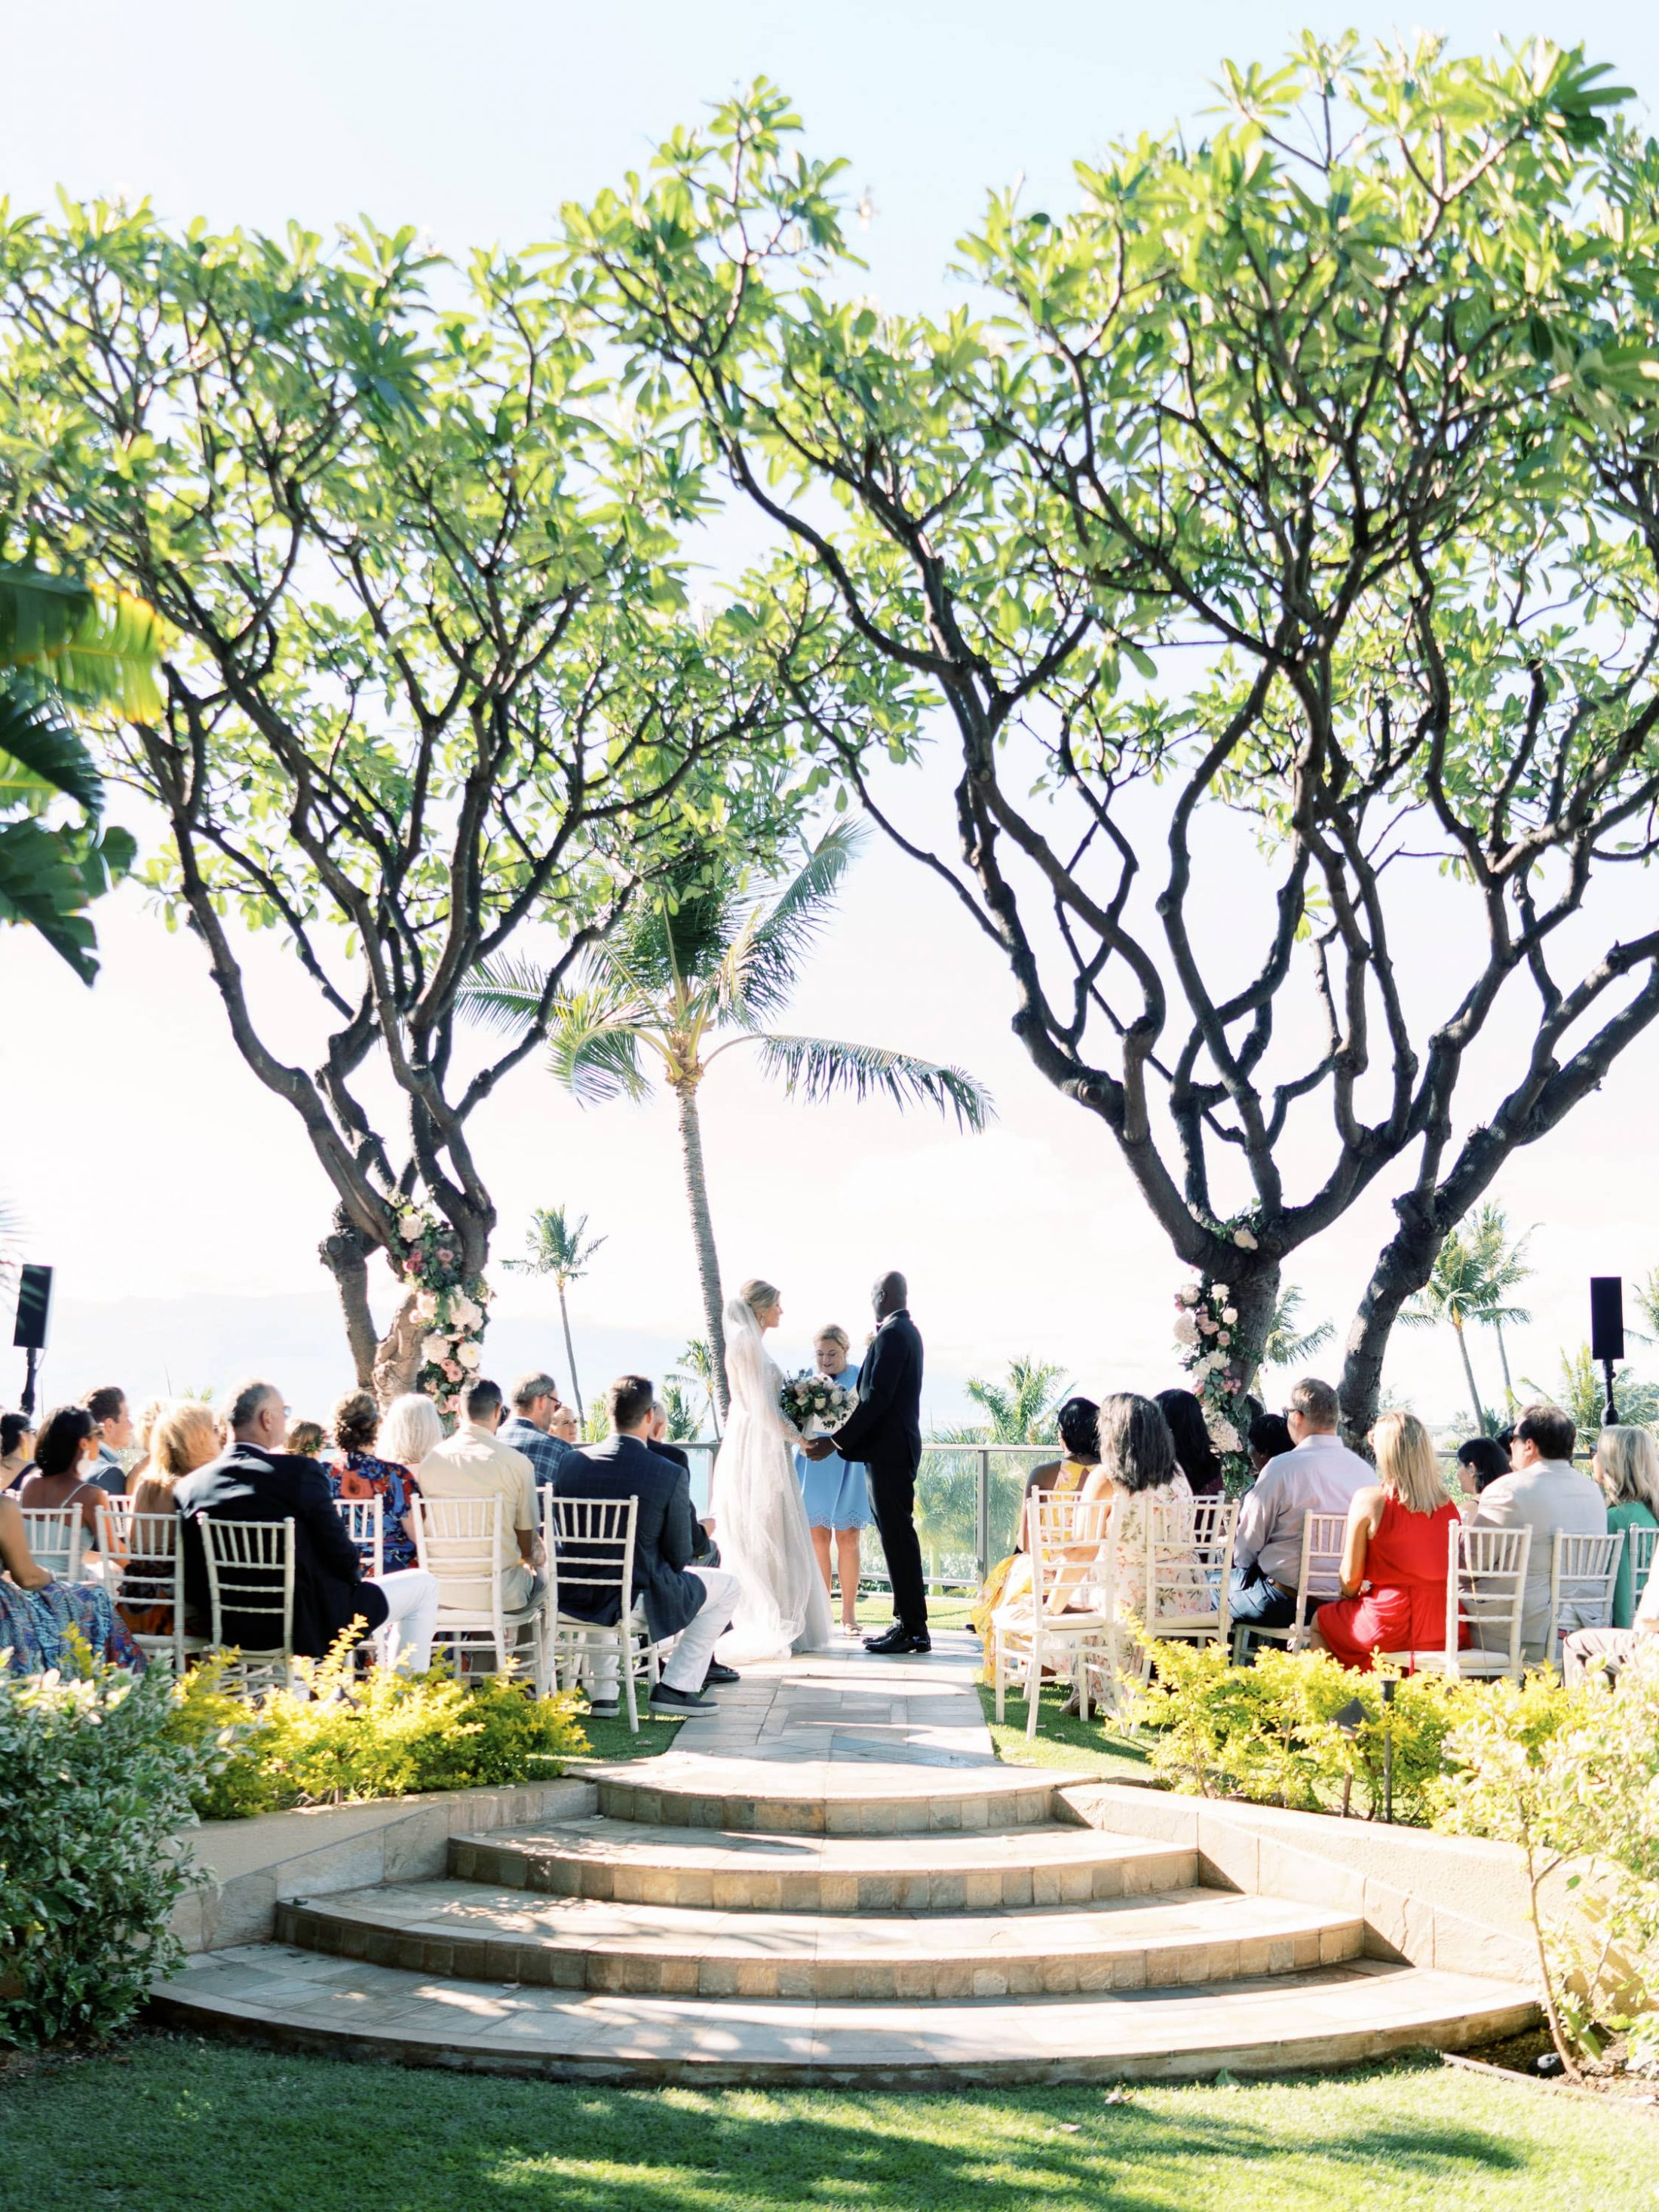 Bride and groom making their vows during the ceremony at Maui wedding at Four Seasons Resort Maui in Wailea, Hawaii | Photo by James x Schulze